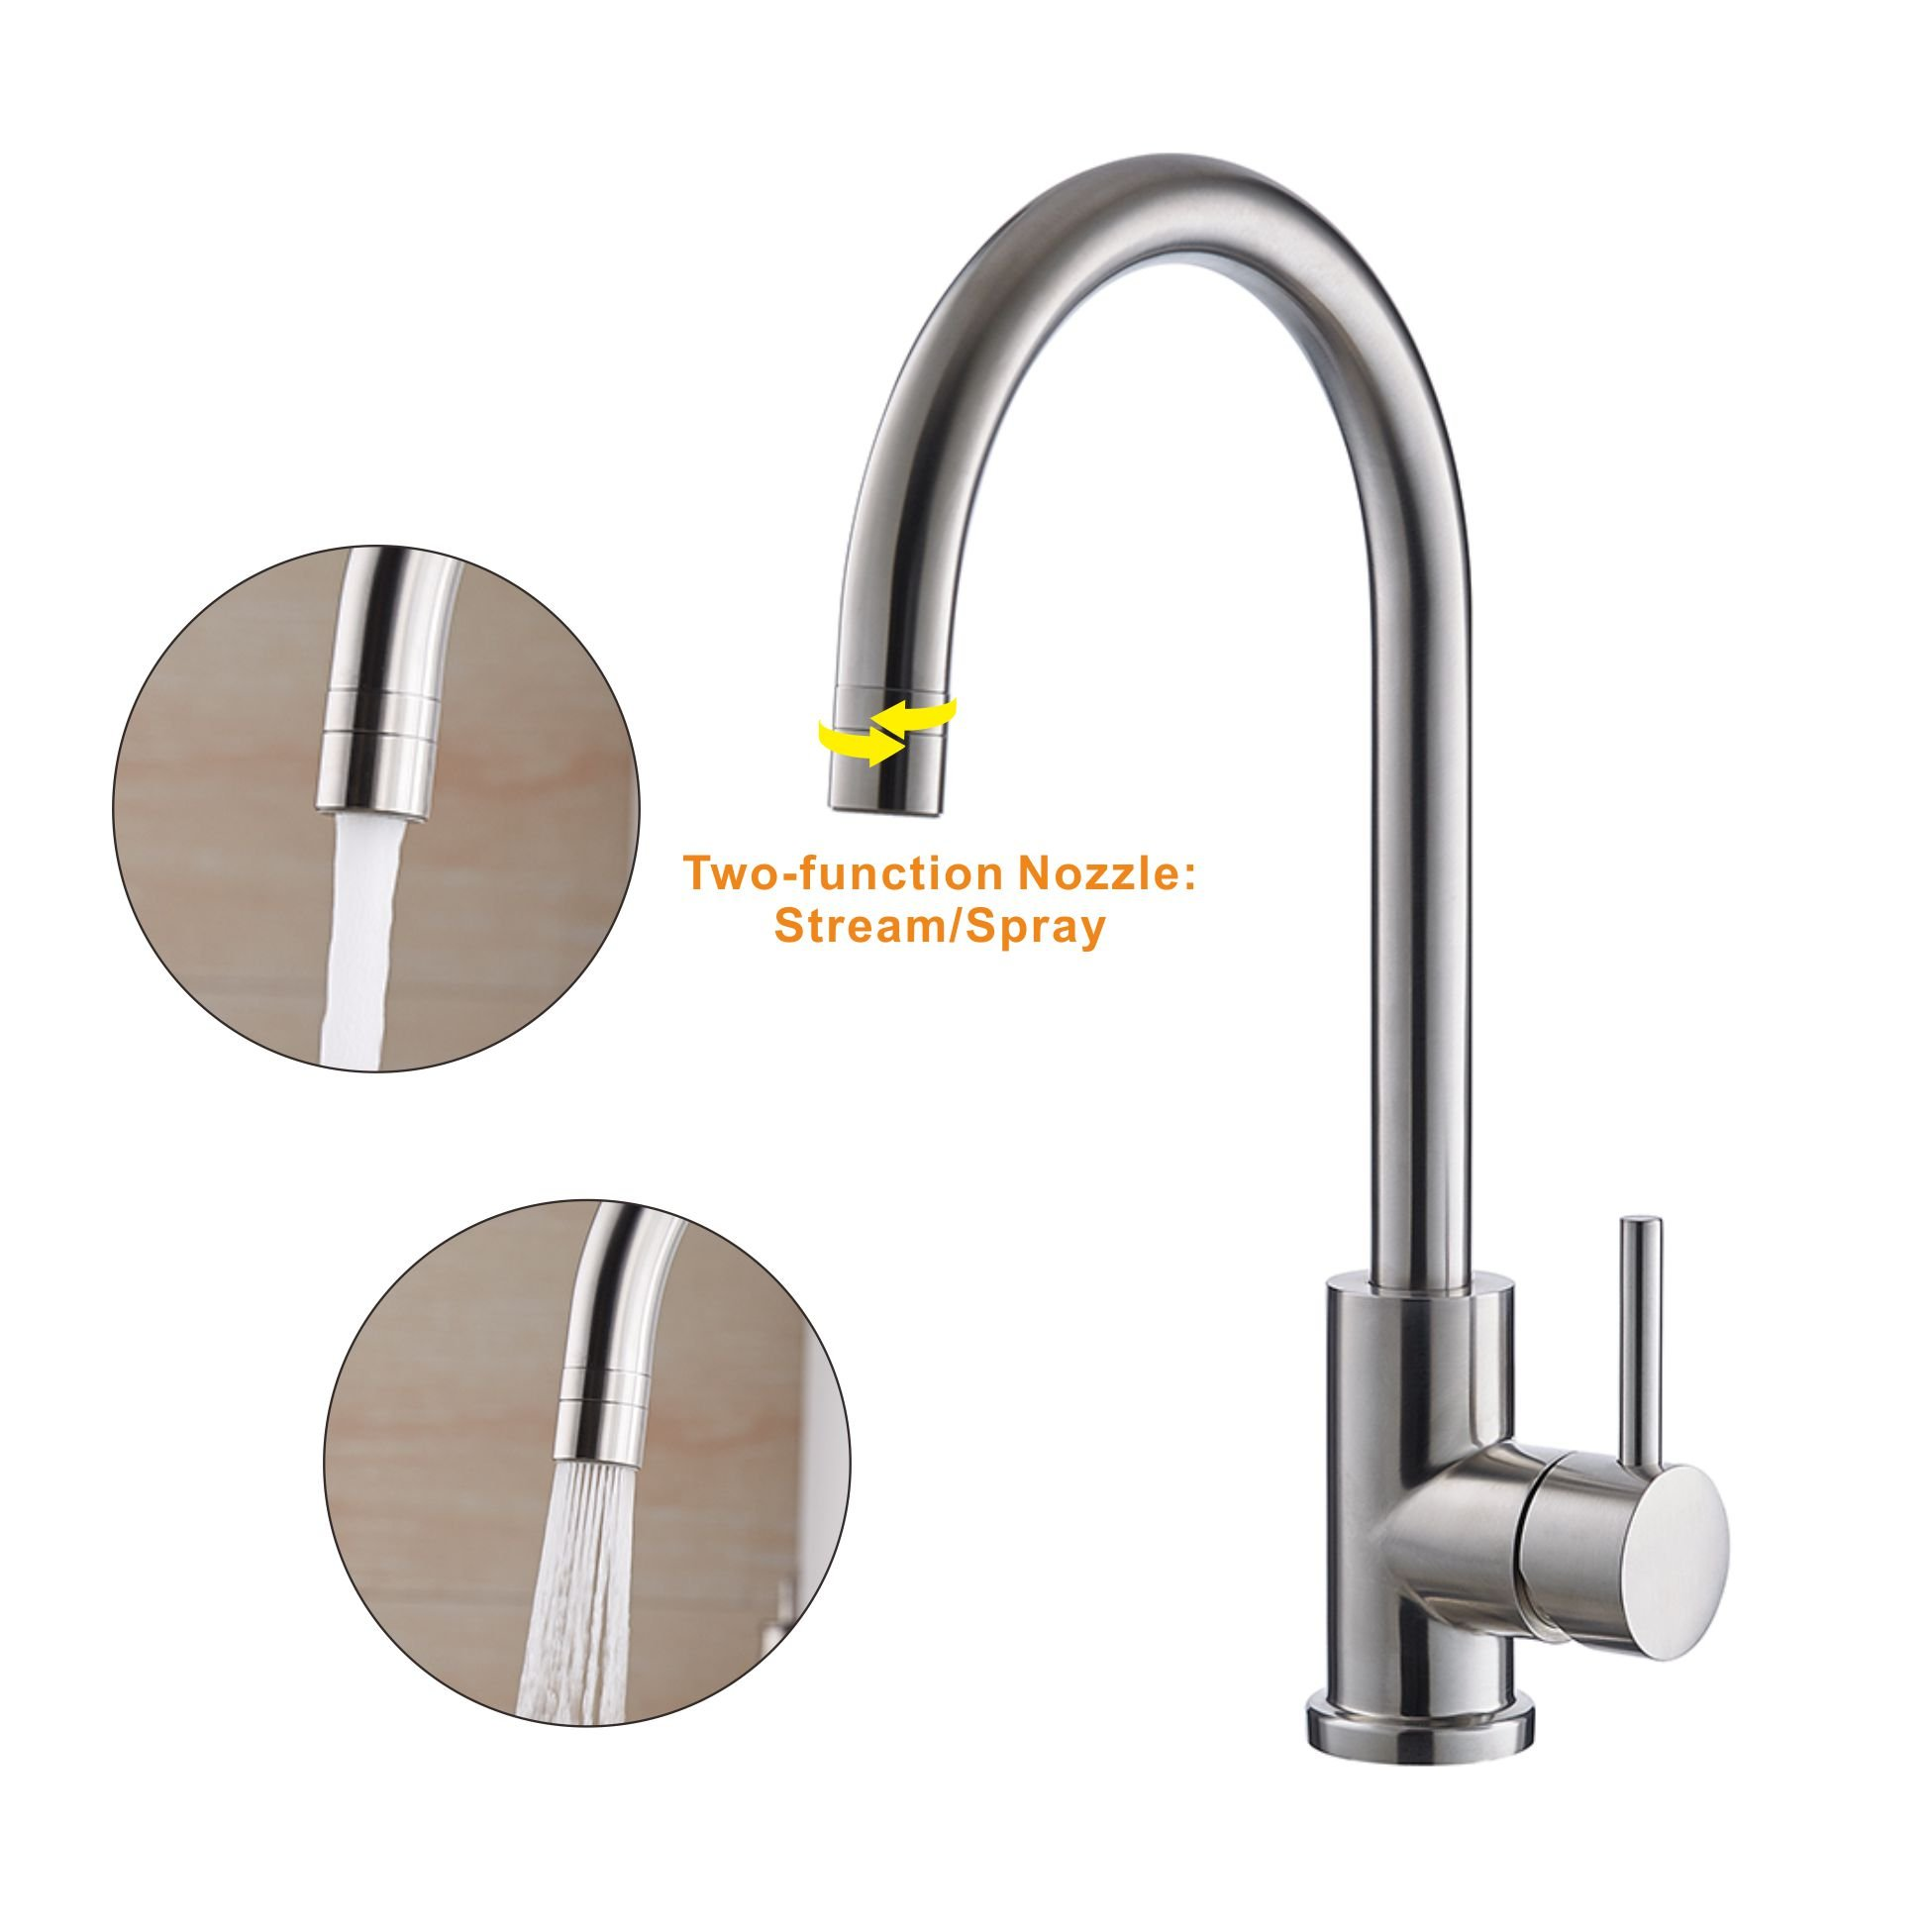 Trywell T304 Solid Stainless Steel Kitchen Sink Faucet, High Arc Single Lever Bar Faucet with Two-function Nozzle,1.8 Gpm by Trywell (Image #4)